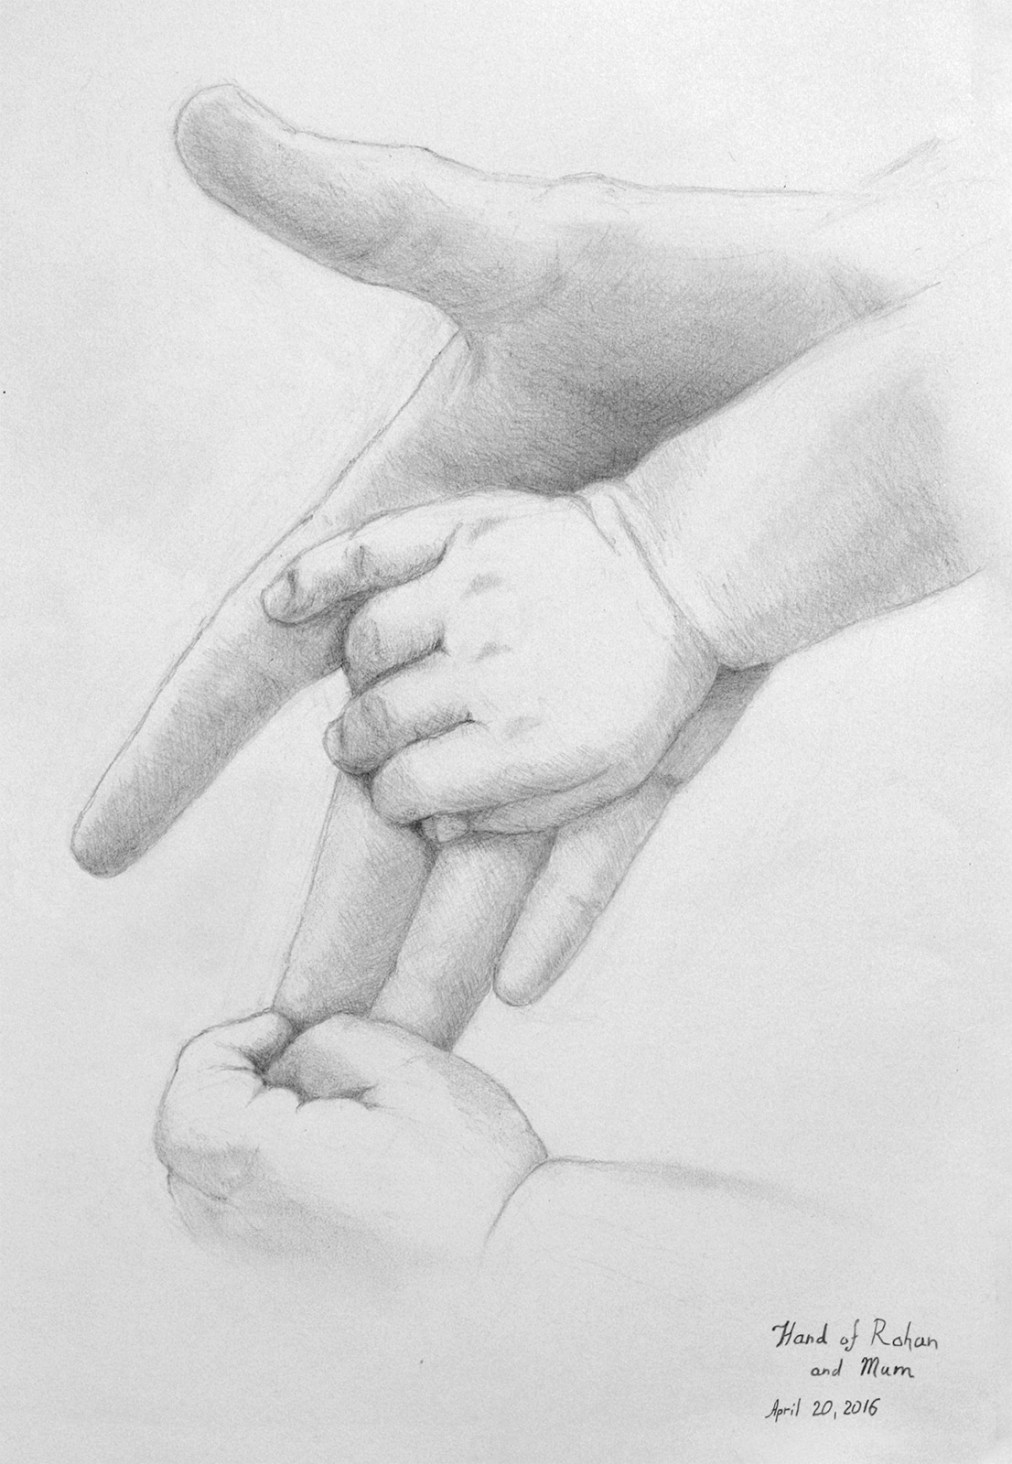 Holding hands by Tatyana Deniz, pencil on paper, 2016